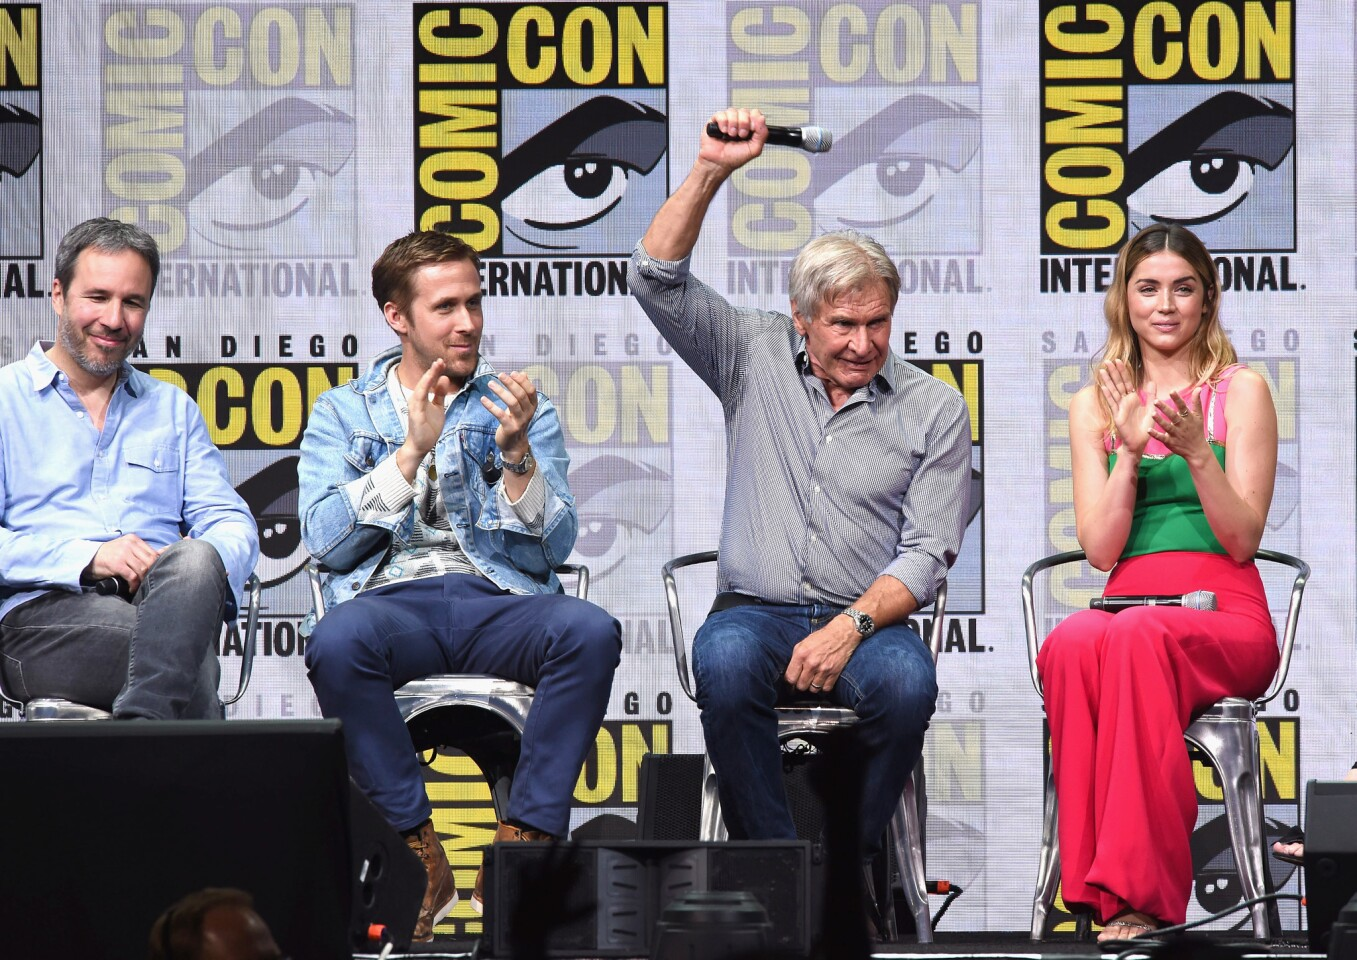 Harrison Ford, Ryan Gosling panel,  Blade Runner